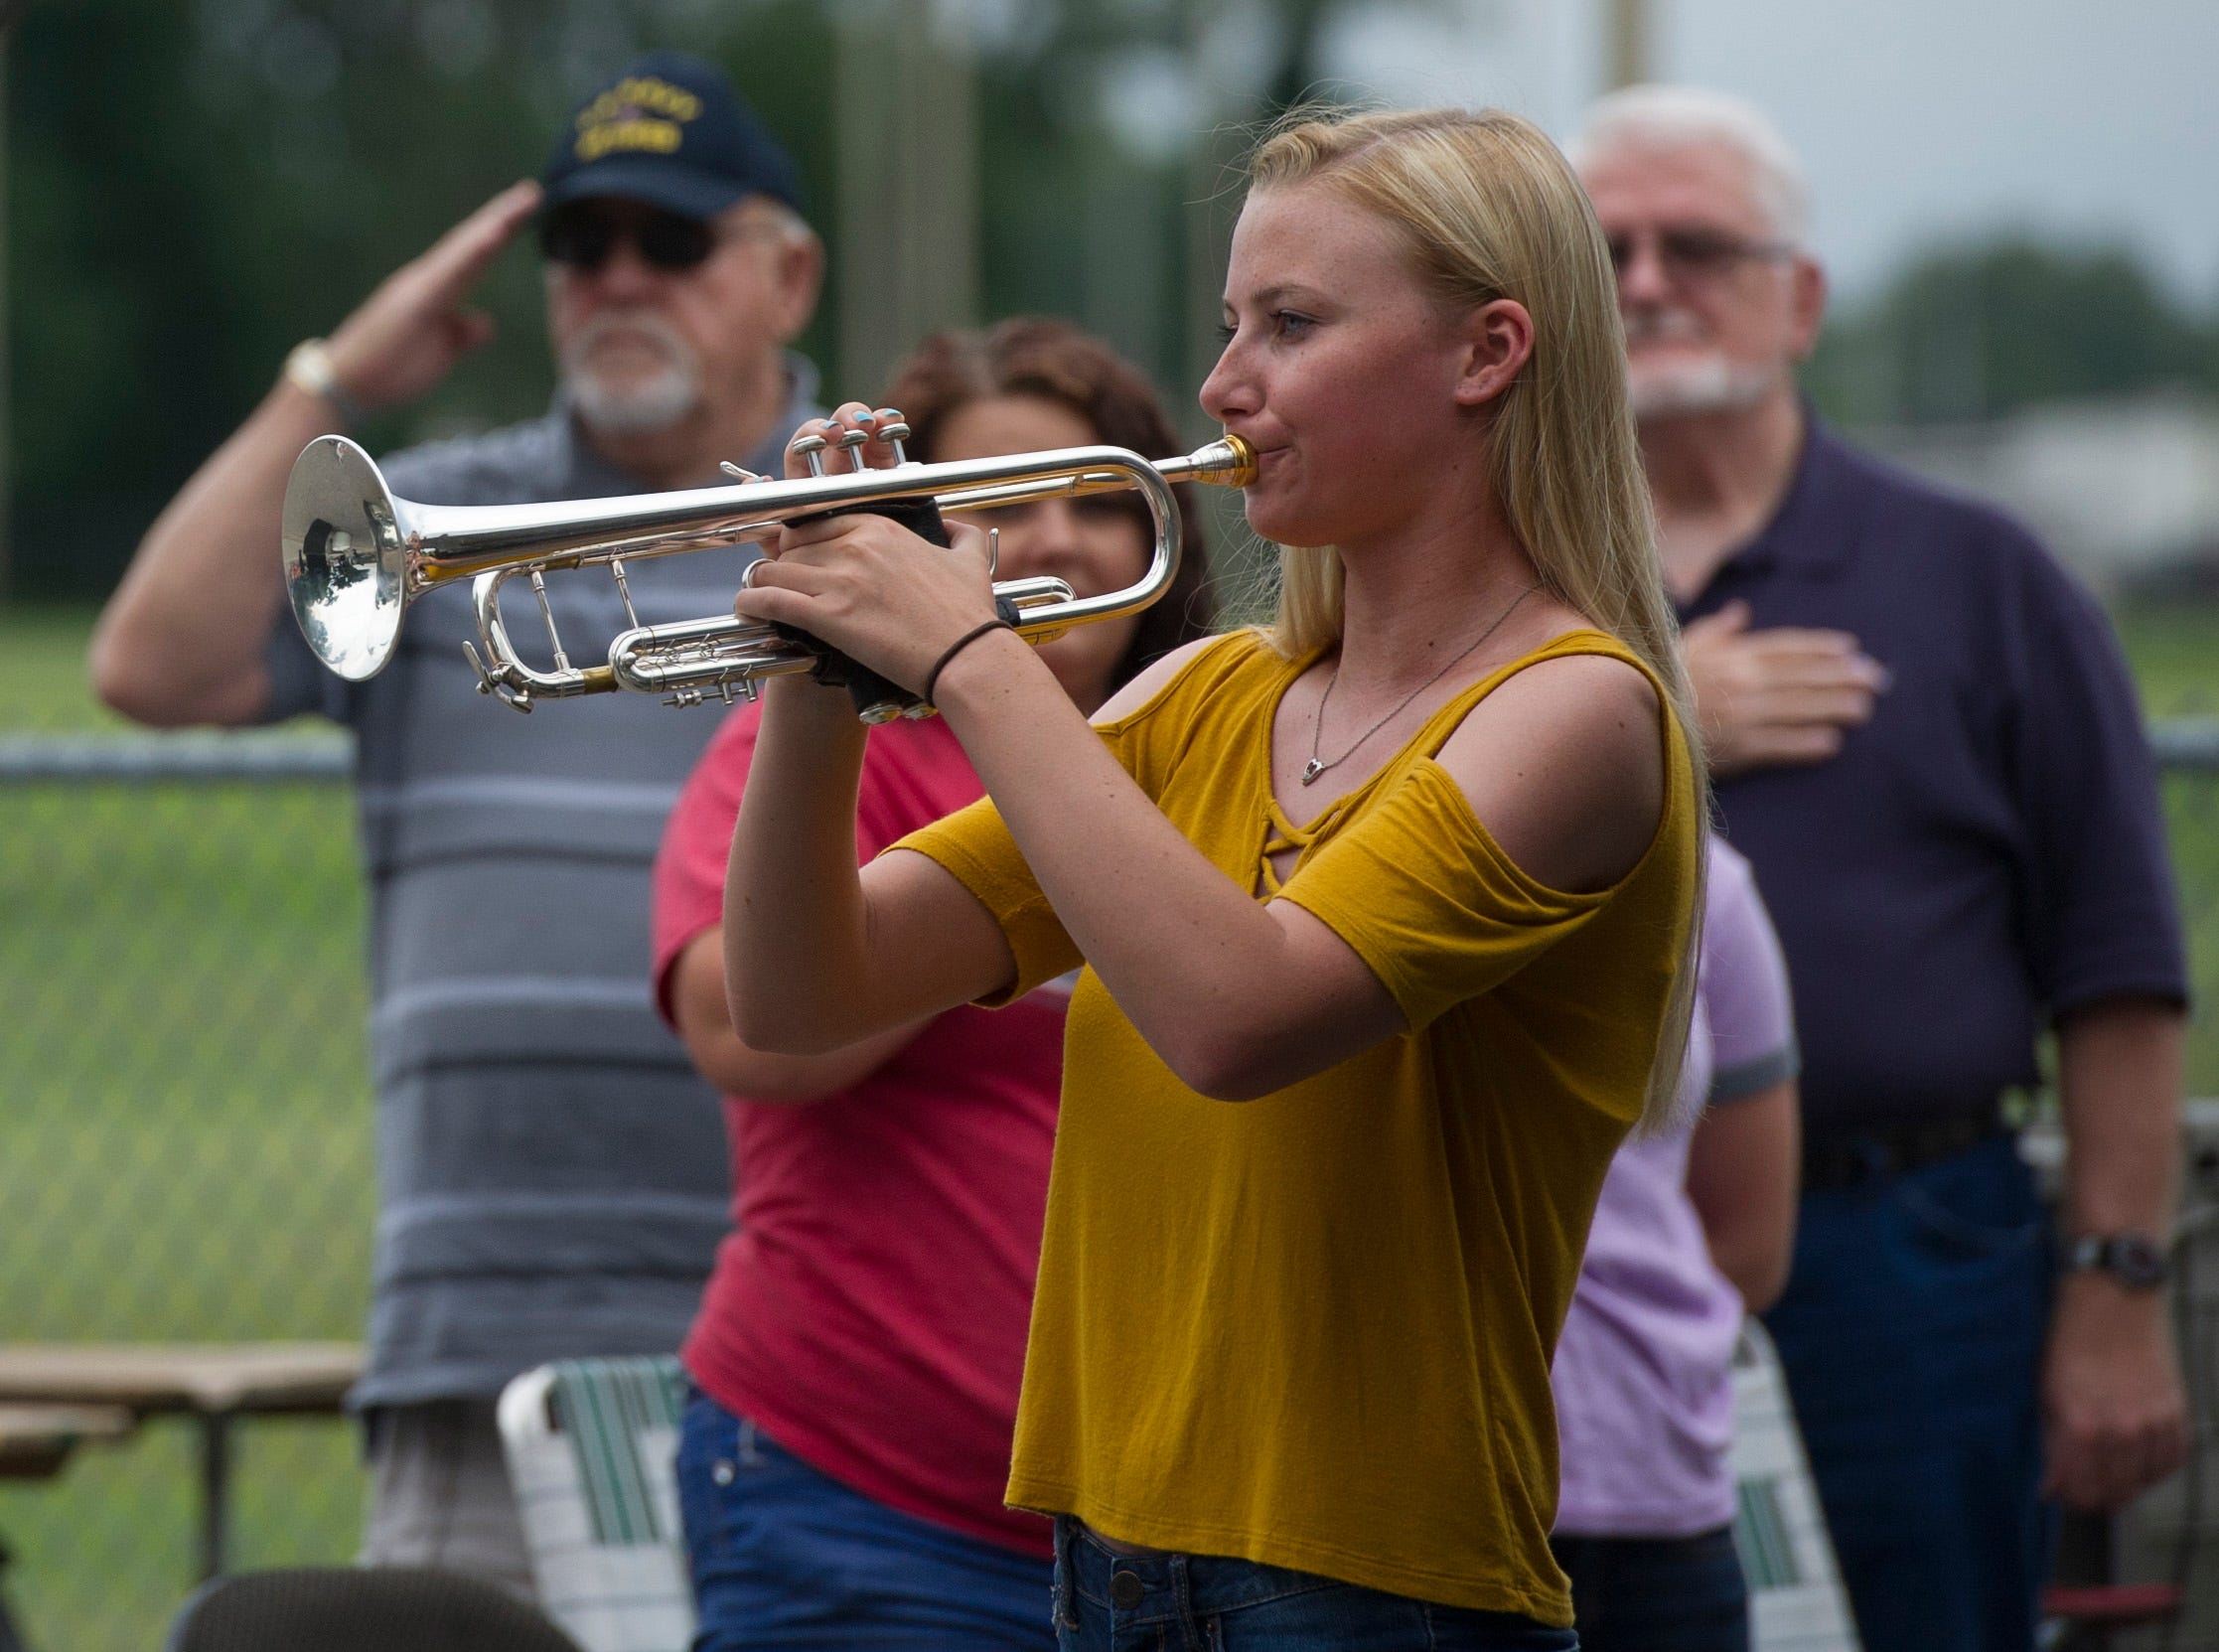 Jillian Belli, 19, performs the national anthem on the trumpet during the 35th National Night Out at Wesselman Park Tuesday, August 7, 2018.